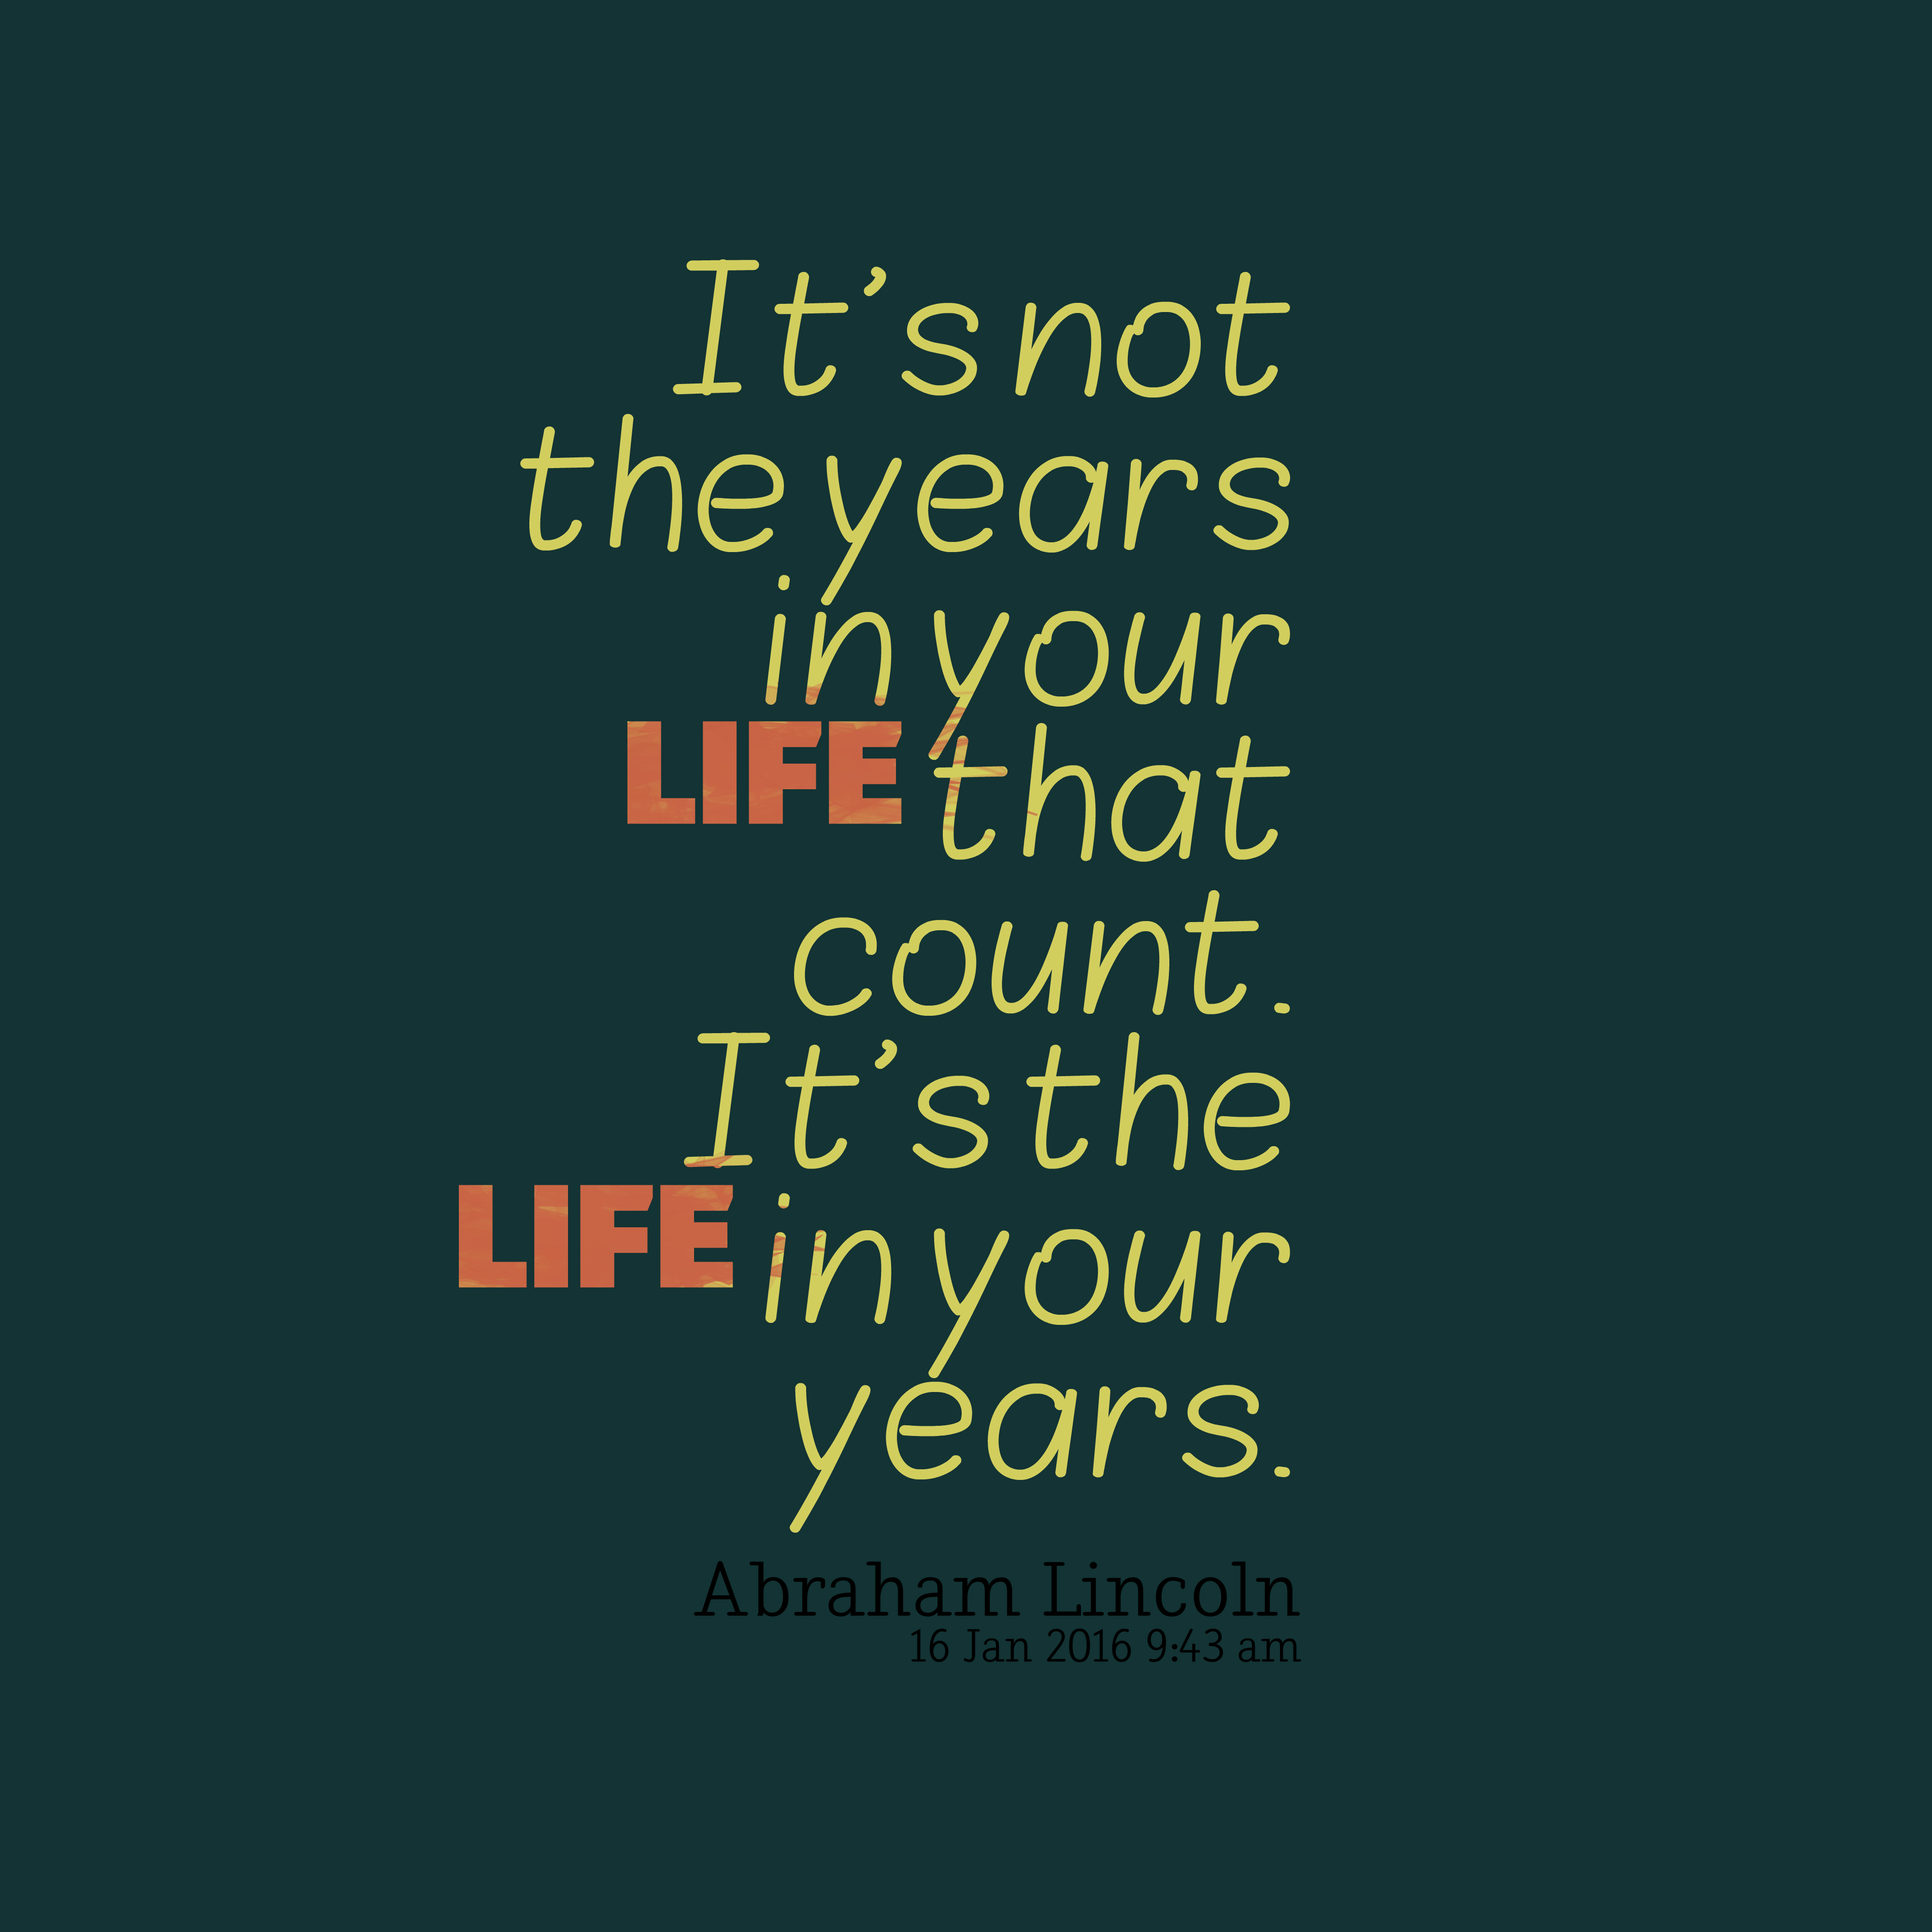 Quotes image of It's not the years in your life that count. It's the life in your years.